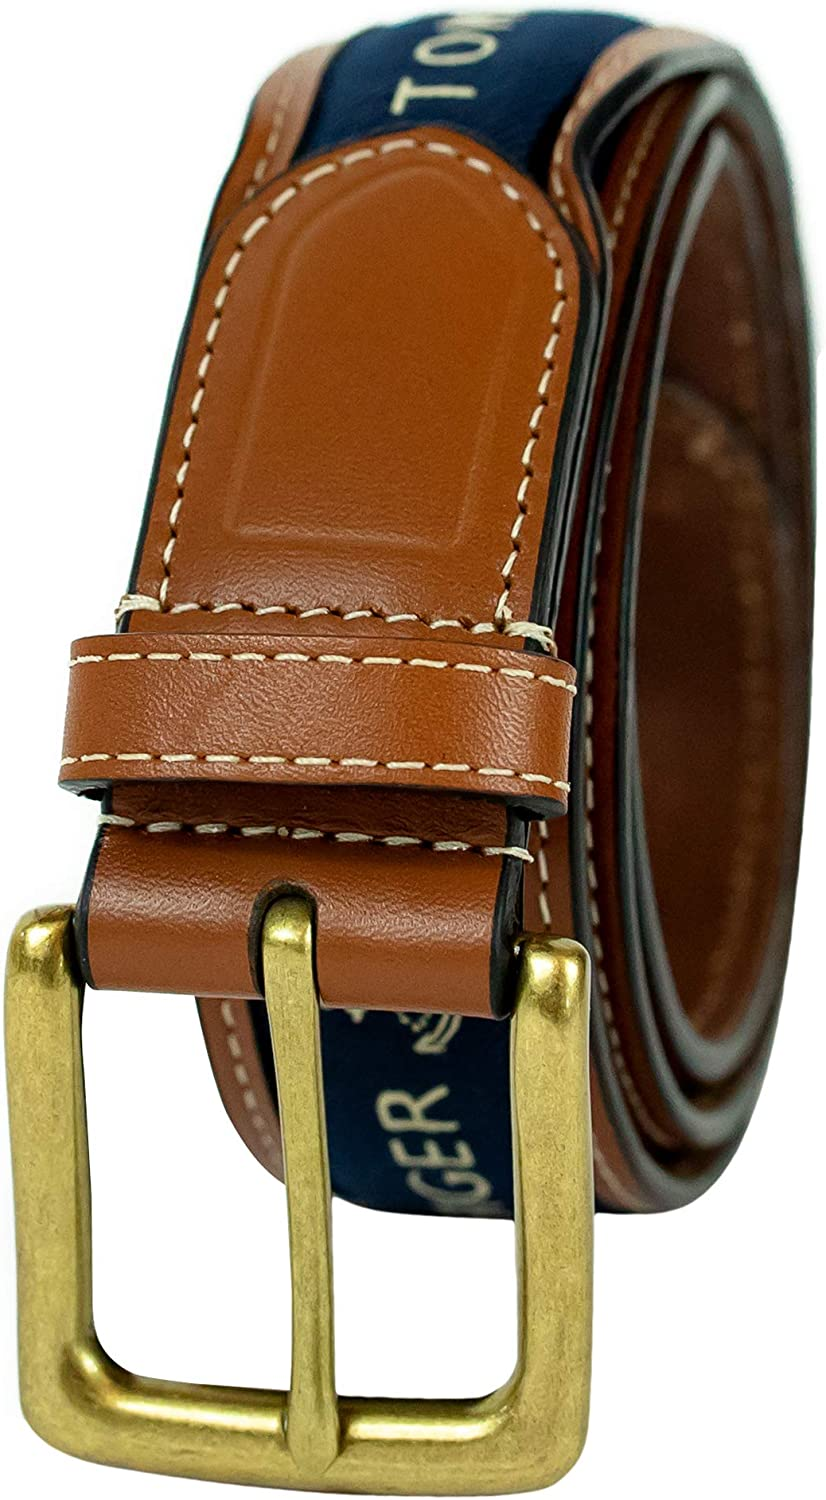 Tommy Hilfiger Mens Ribbon Inlay Belt - Ribbon Fabric Design with Single Prong Buckle